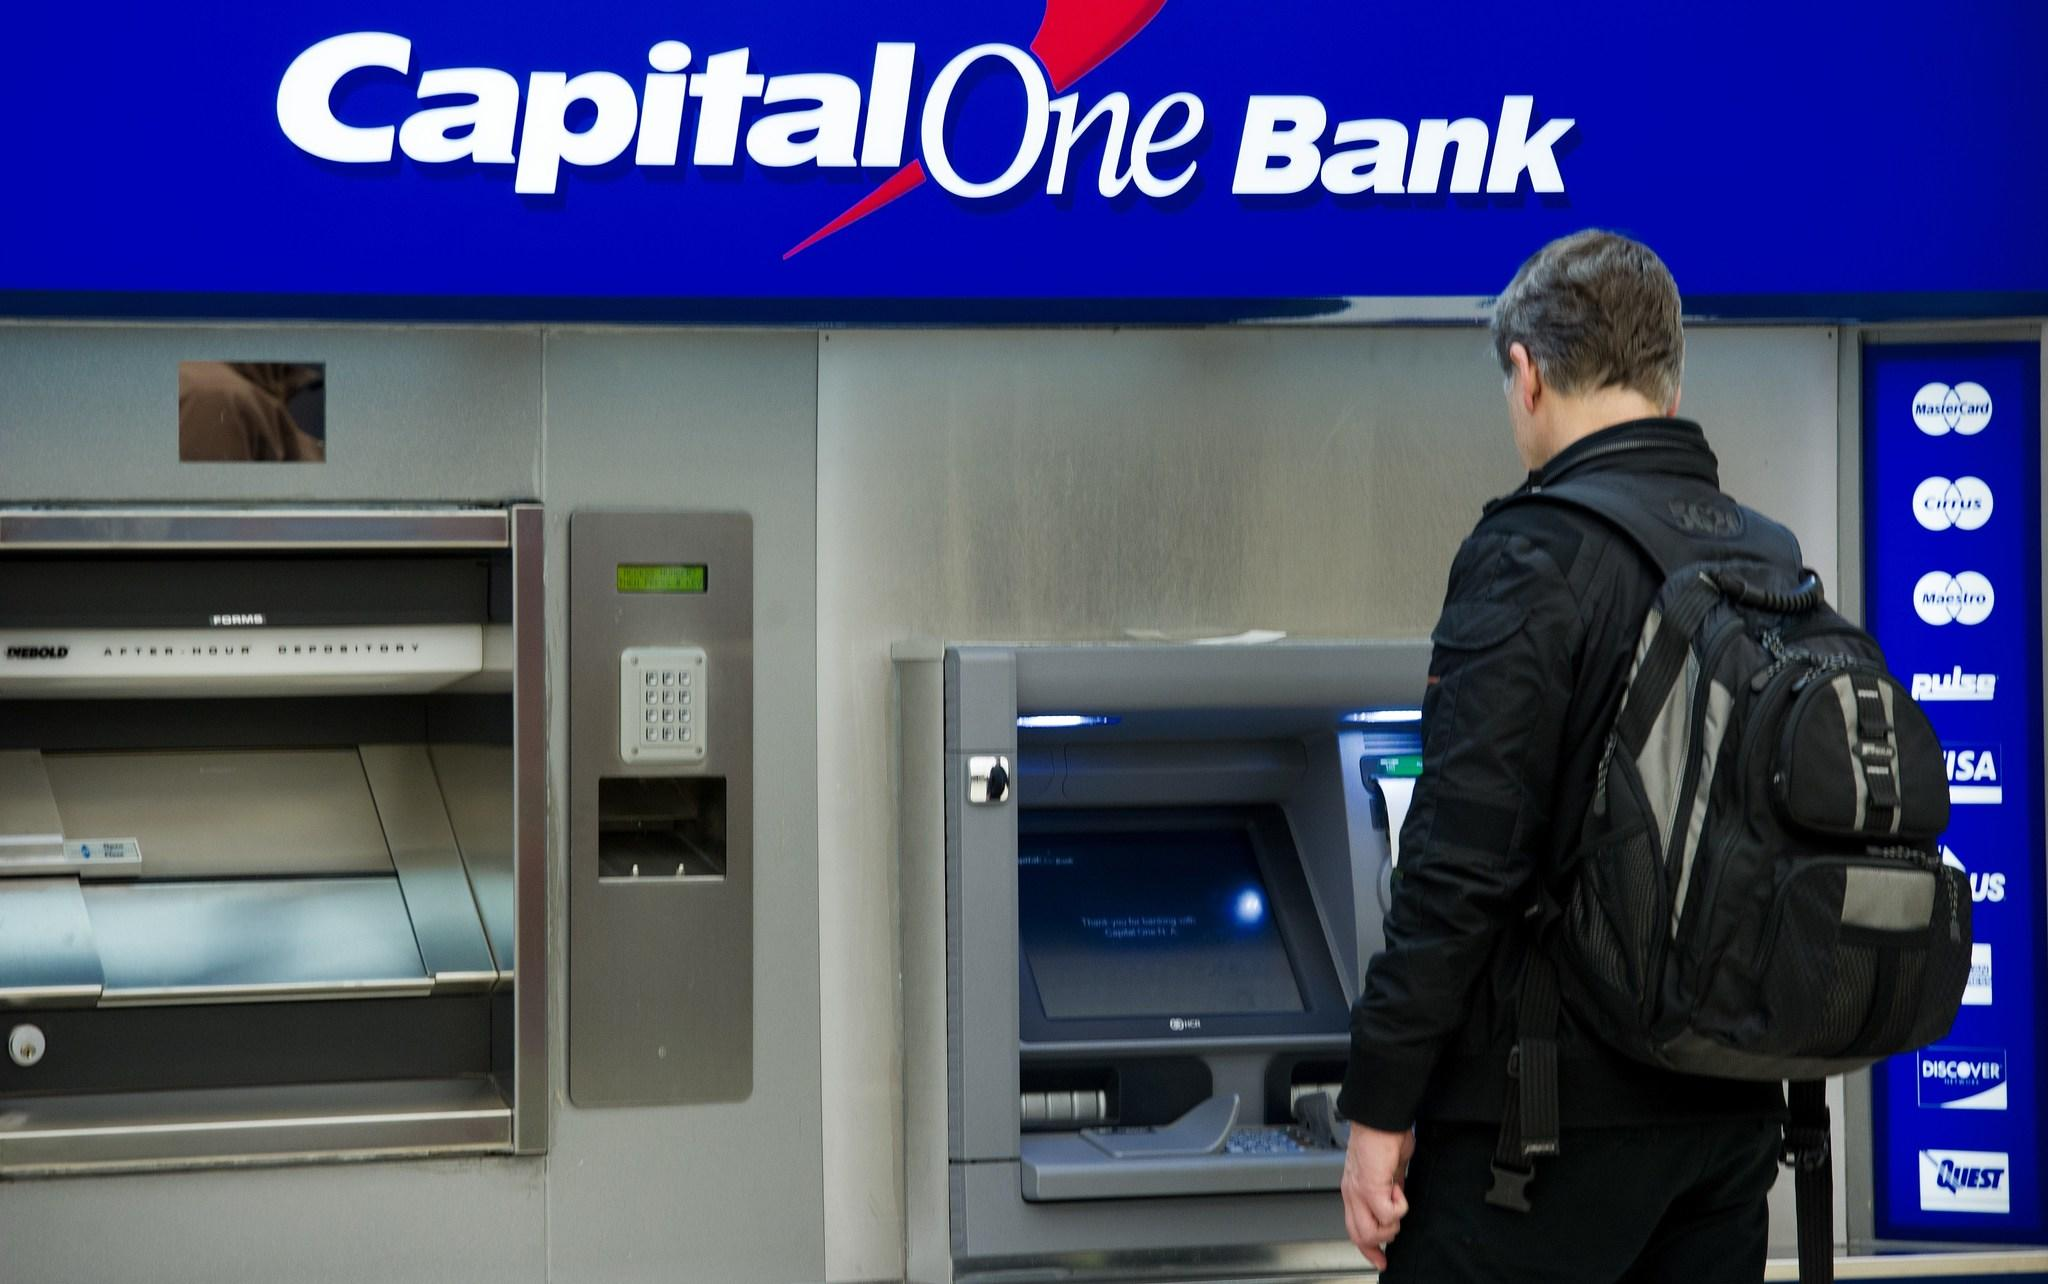 An airline traveler uses a Captial One ATM machine after landing at Dulles International Airport (IAD).